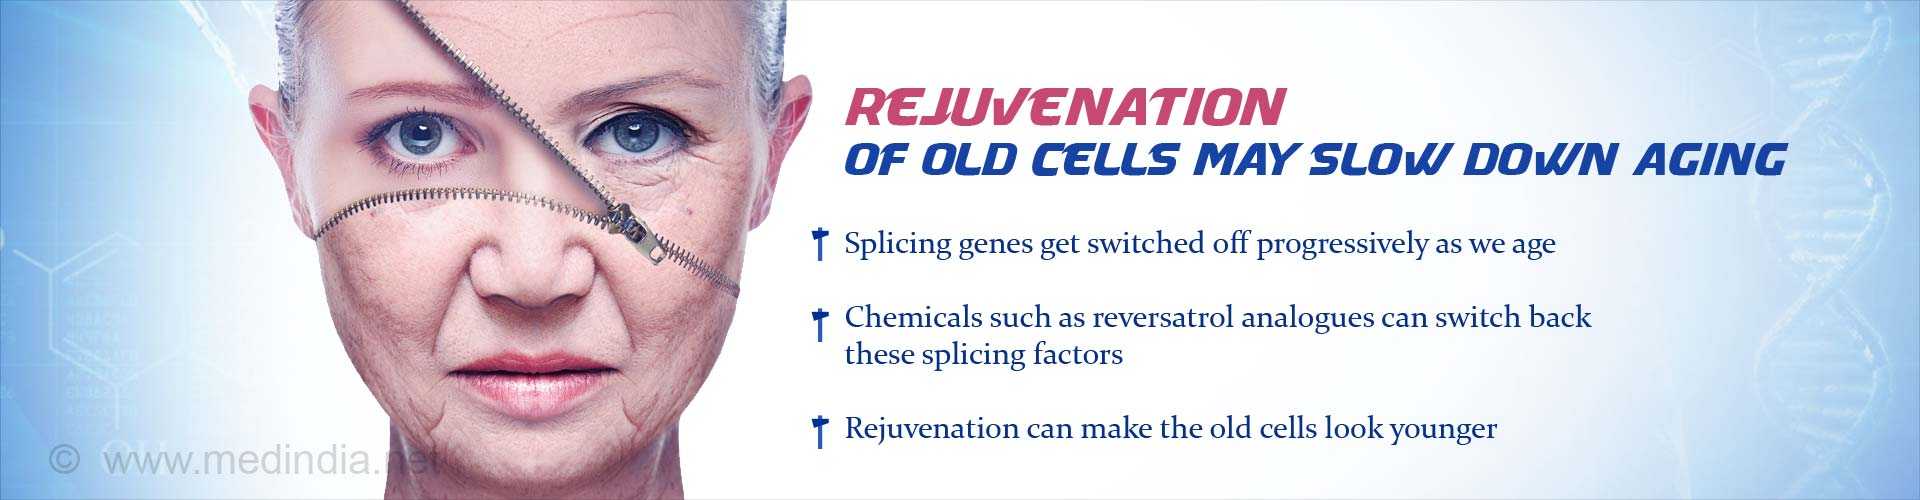 Old Cells can Now be Rejuvenated to Slow Down Aging